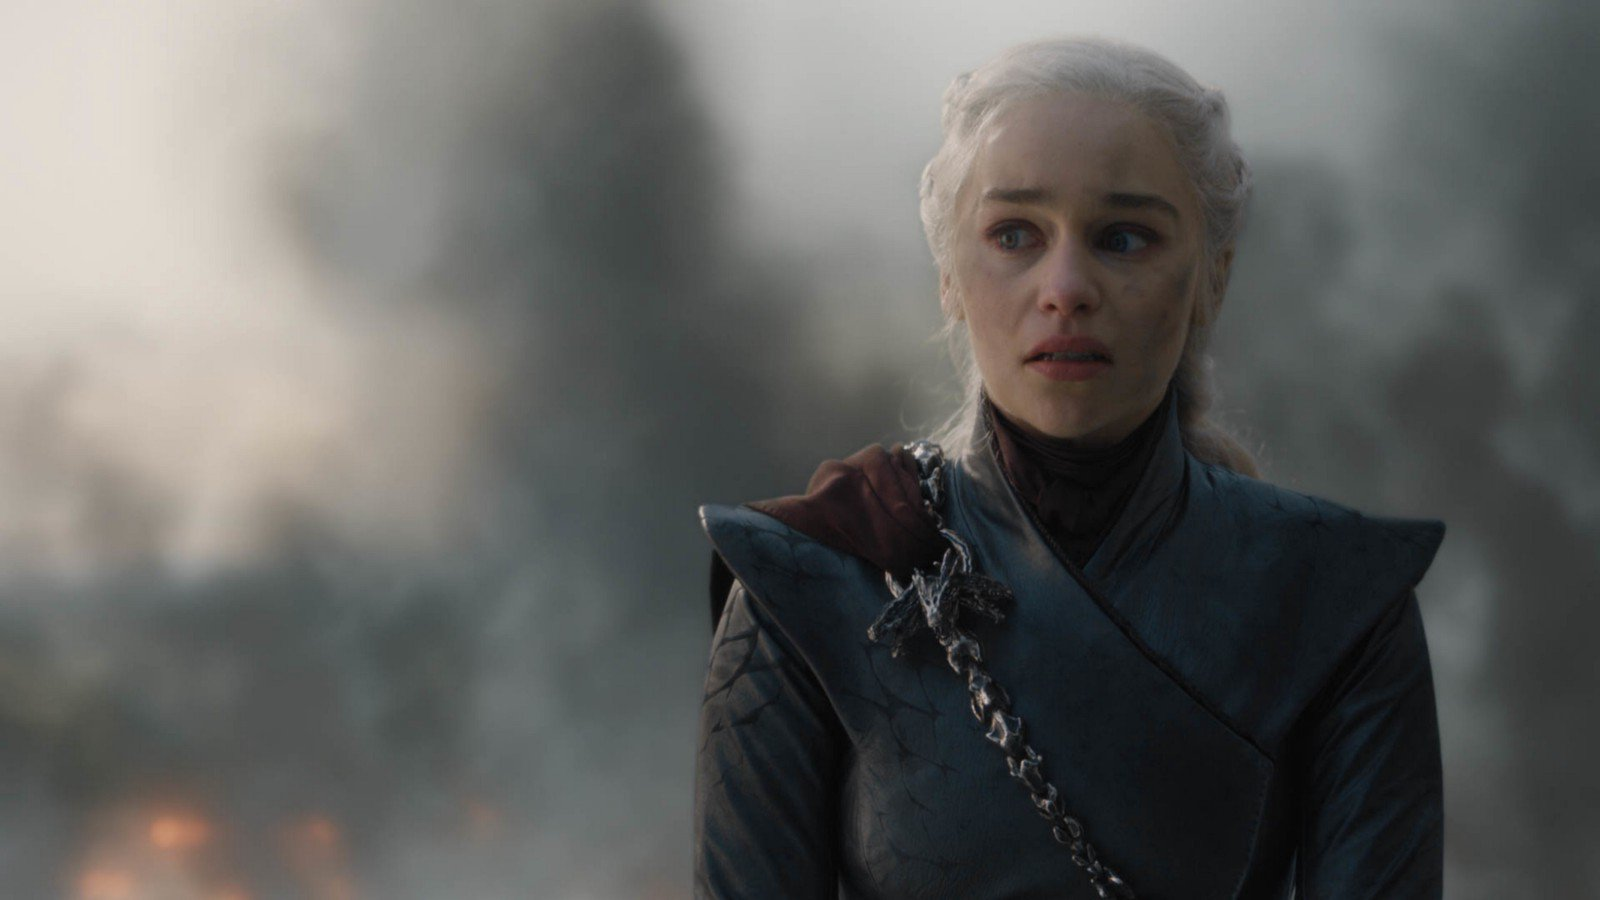 Emilia Clarke as the Mad Queen Daenerys (Picture: HBO)